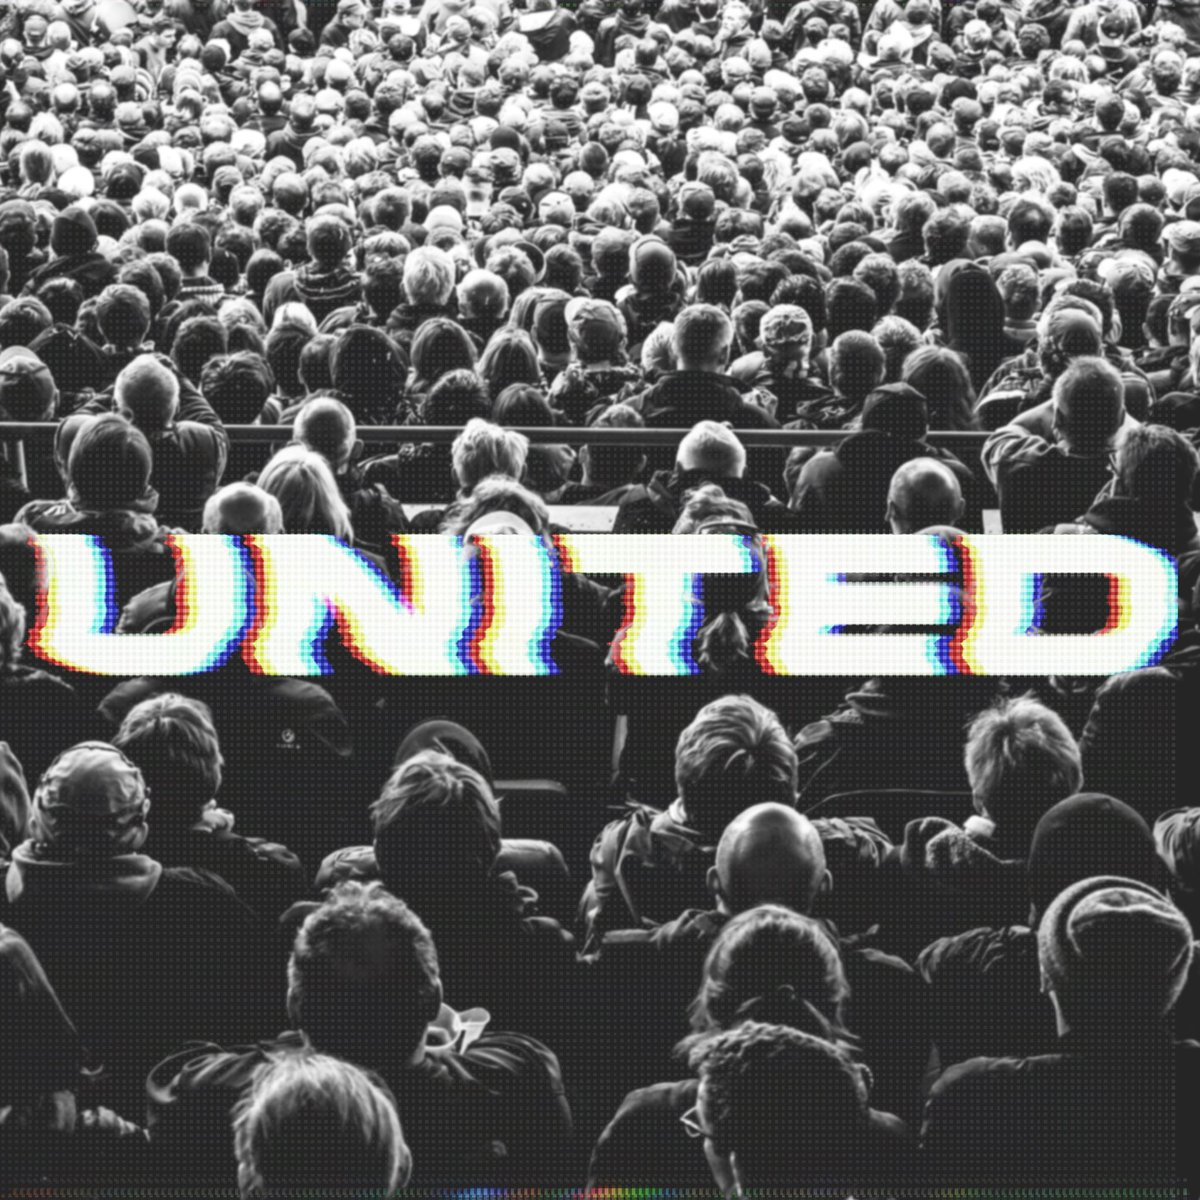 Hillsong United - People 2019 English Christian Live Album